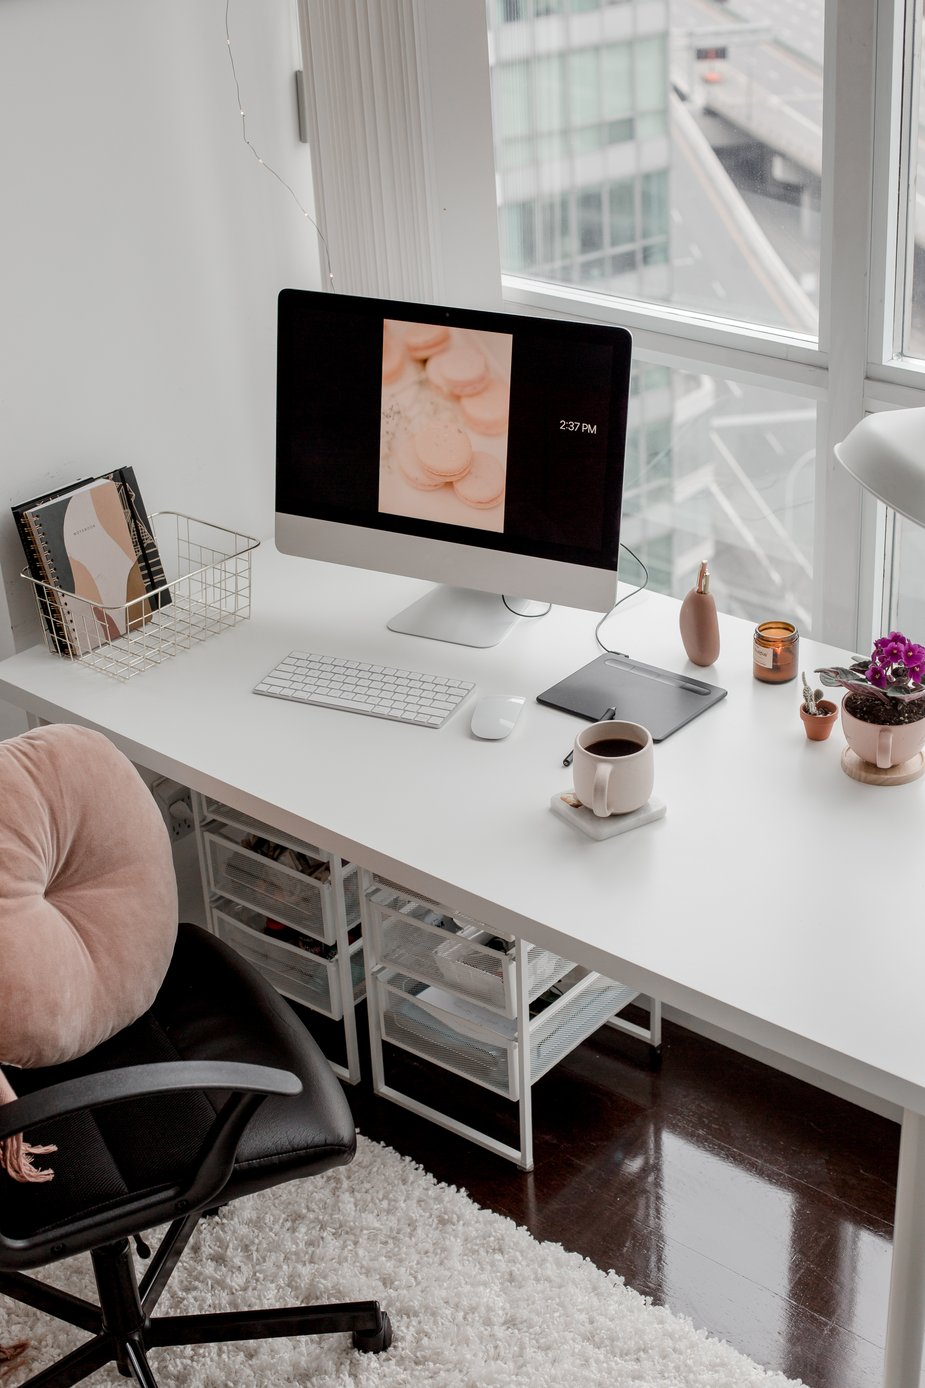 Home Offices Continue to Gain in Popularity Amid Pandemic